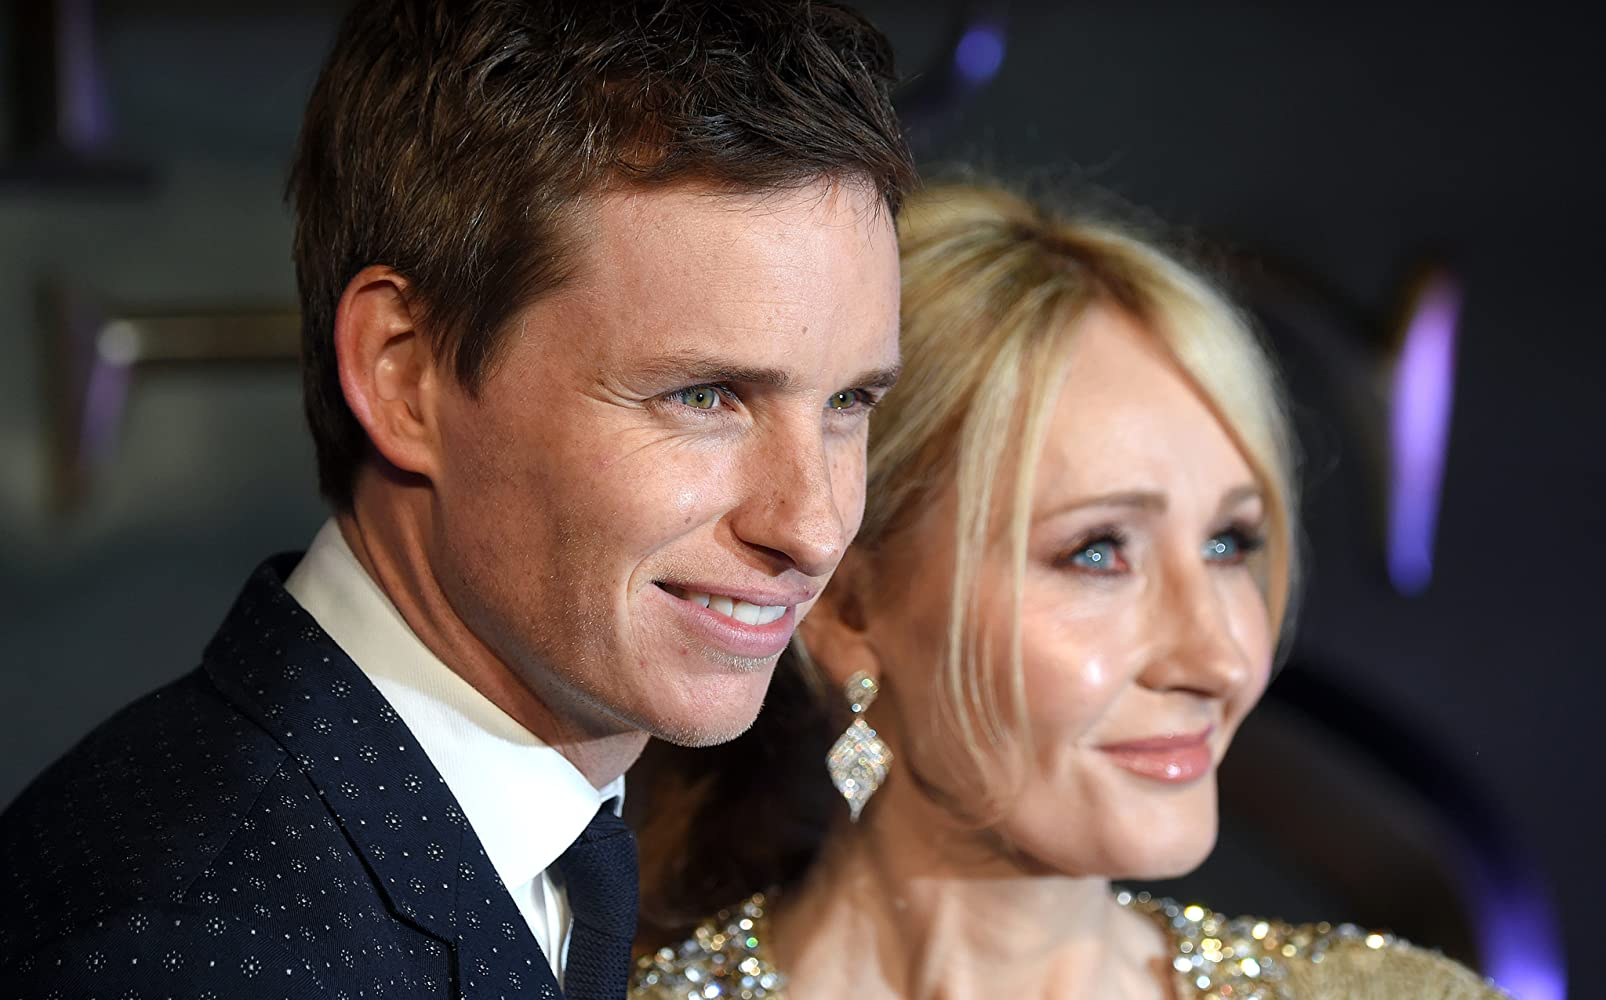 J.K. Rowling and Eddie Redmayne at an event for Fantastic Beasts and Where to Find Them (2016)